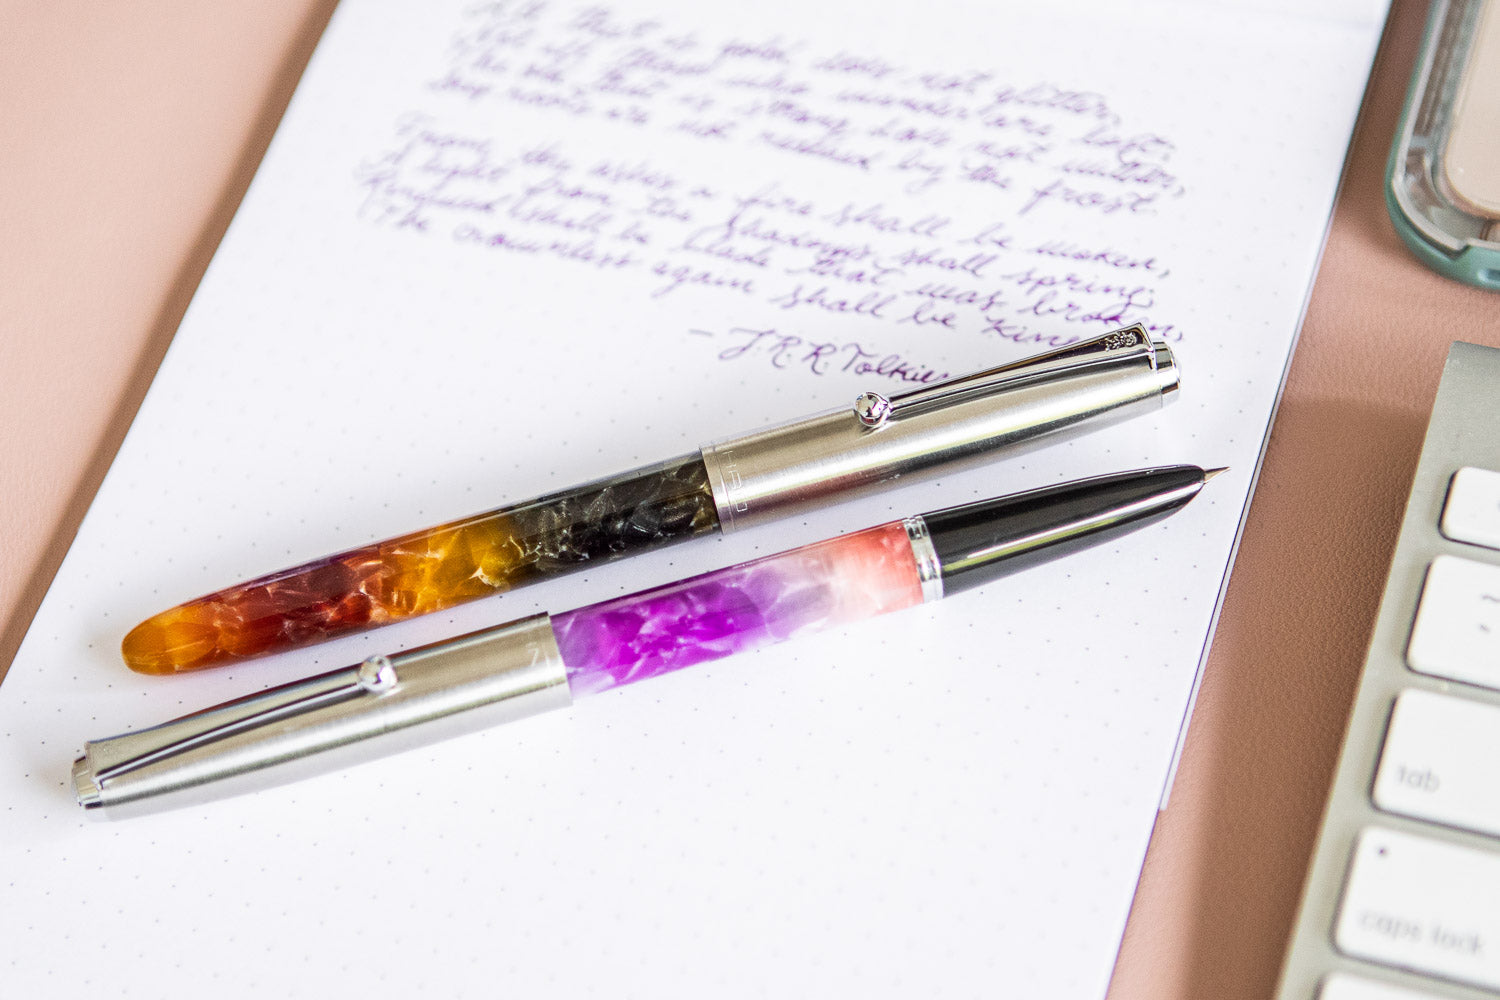 Jinhao 51A Ombré Fountain Pen - Amber/Black